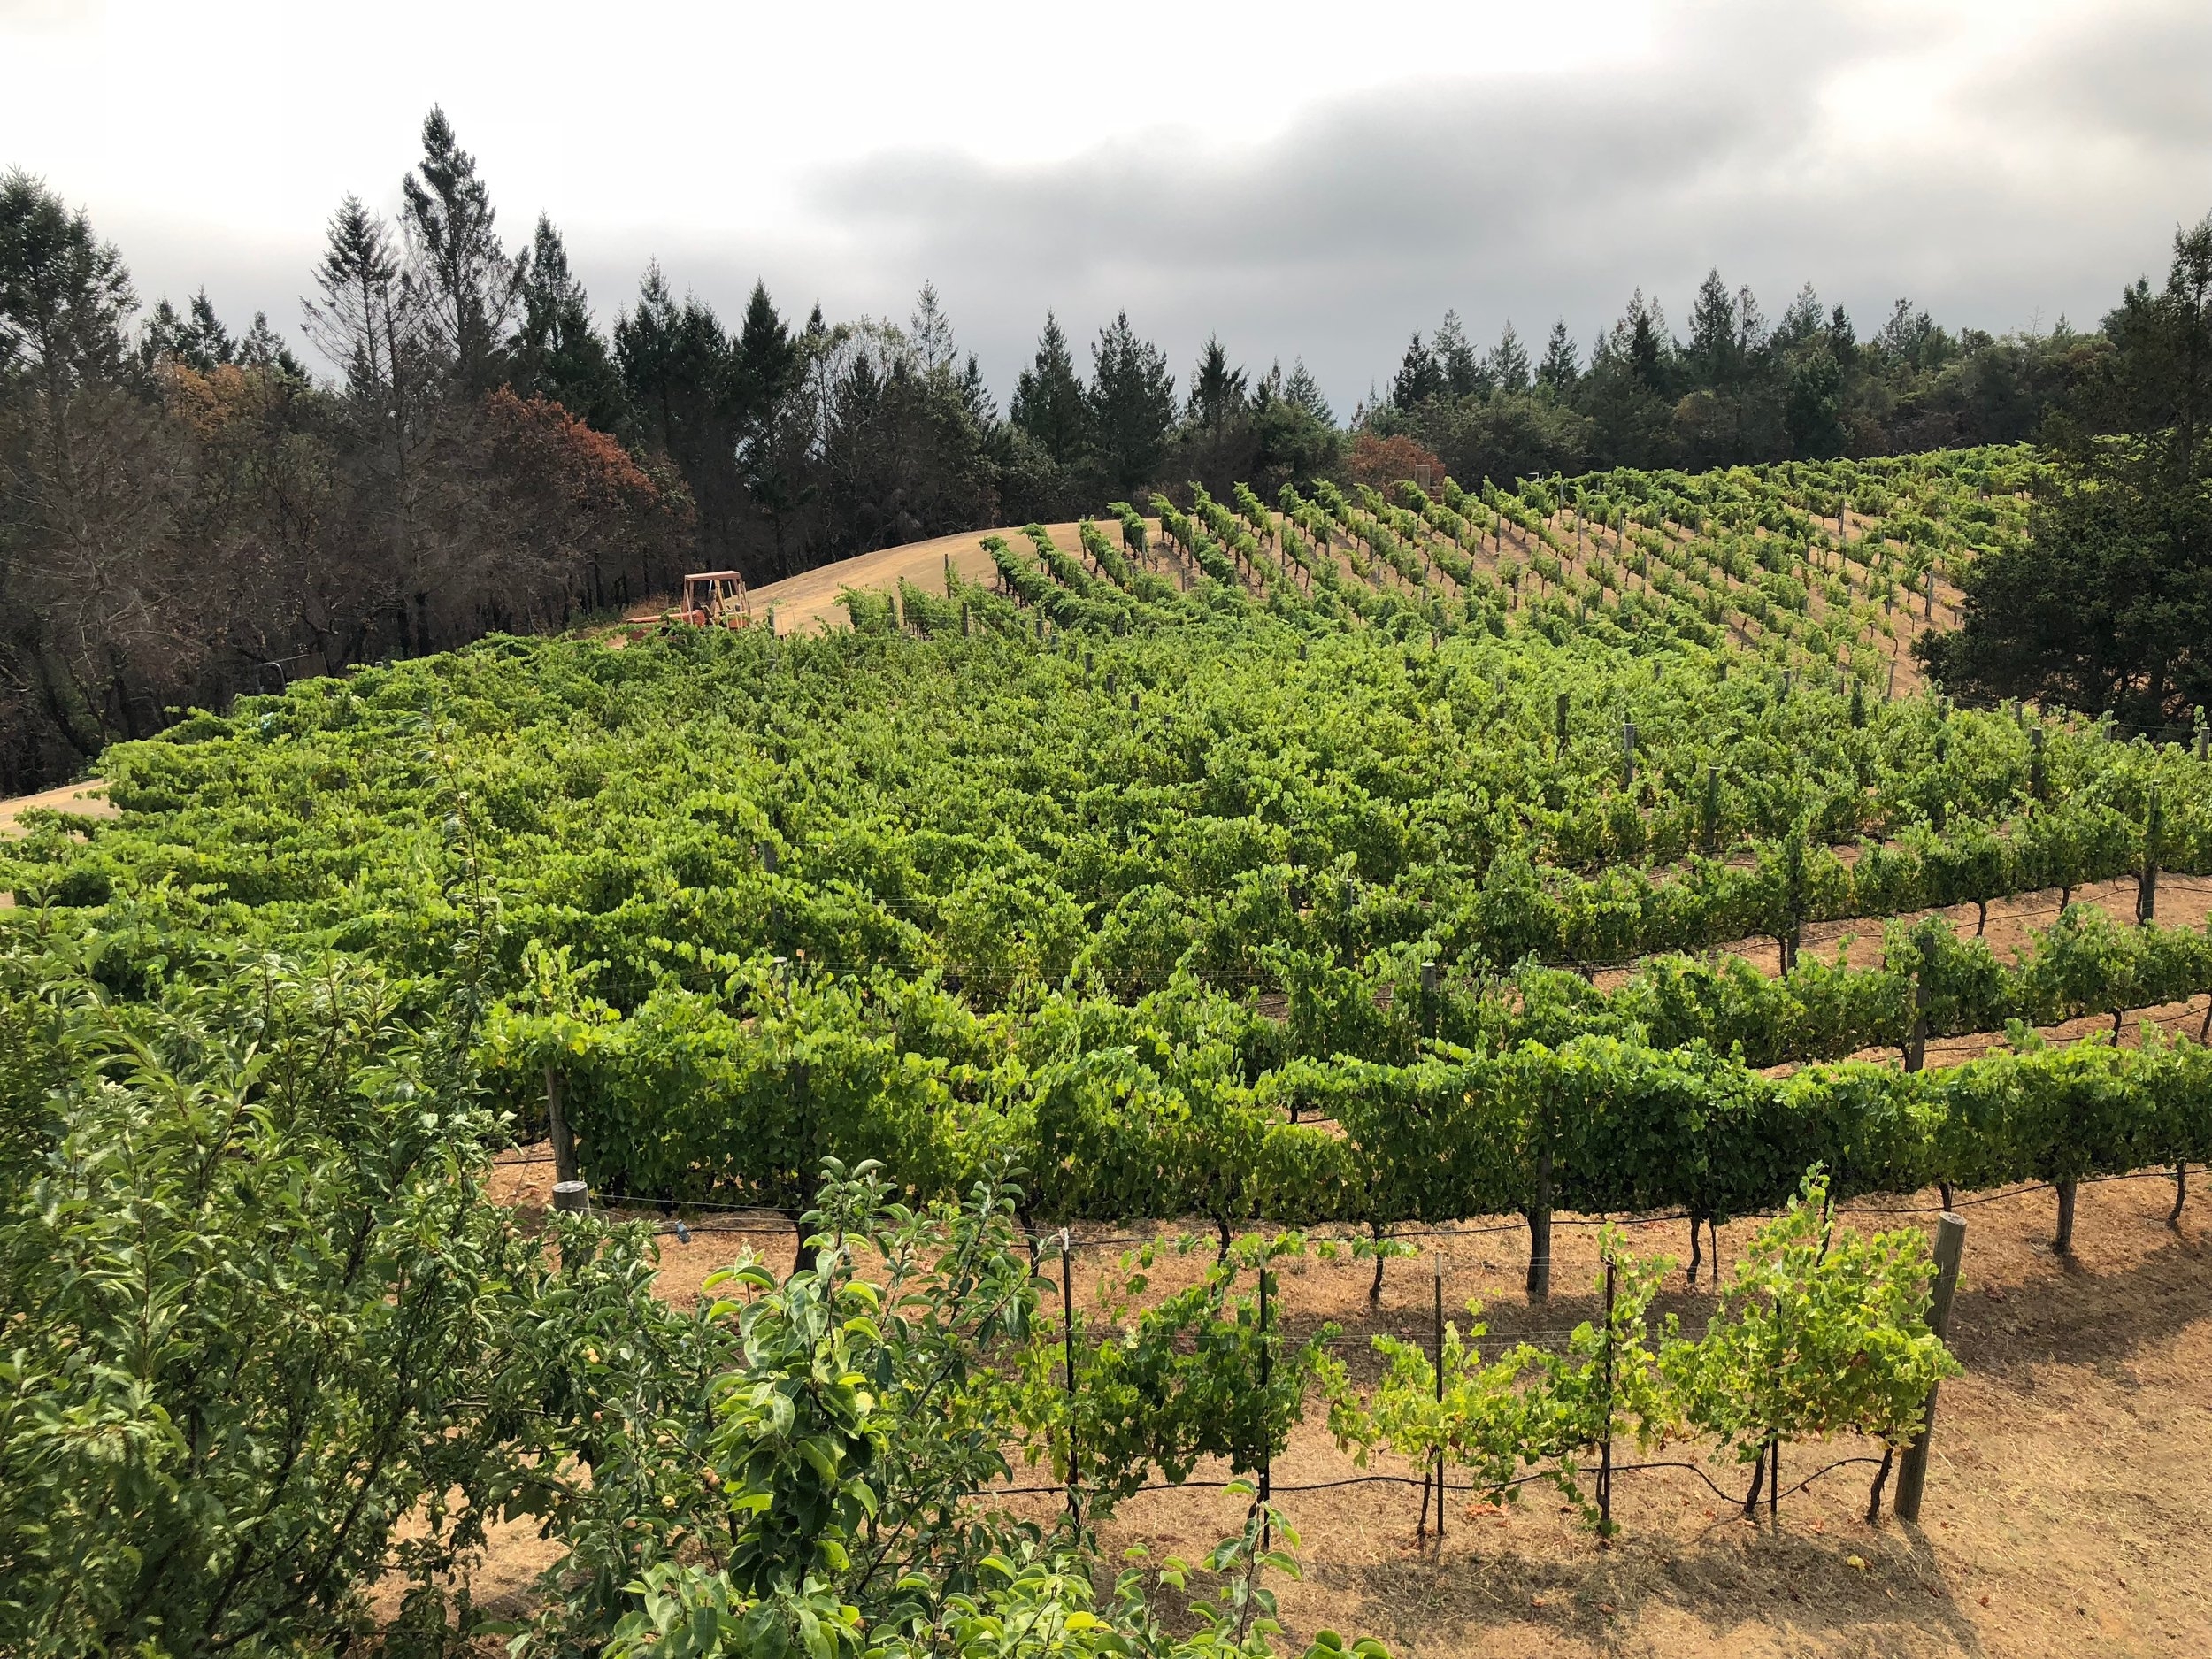 1300 feet elevation and cool afternoon breezes from the San Francisco Bay helped Steve Lagier and Carole Meredith choose Syrah -